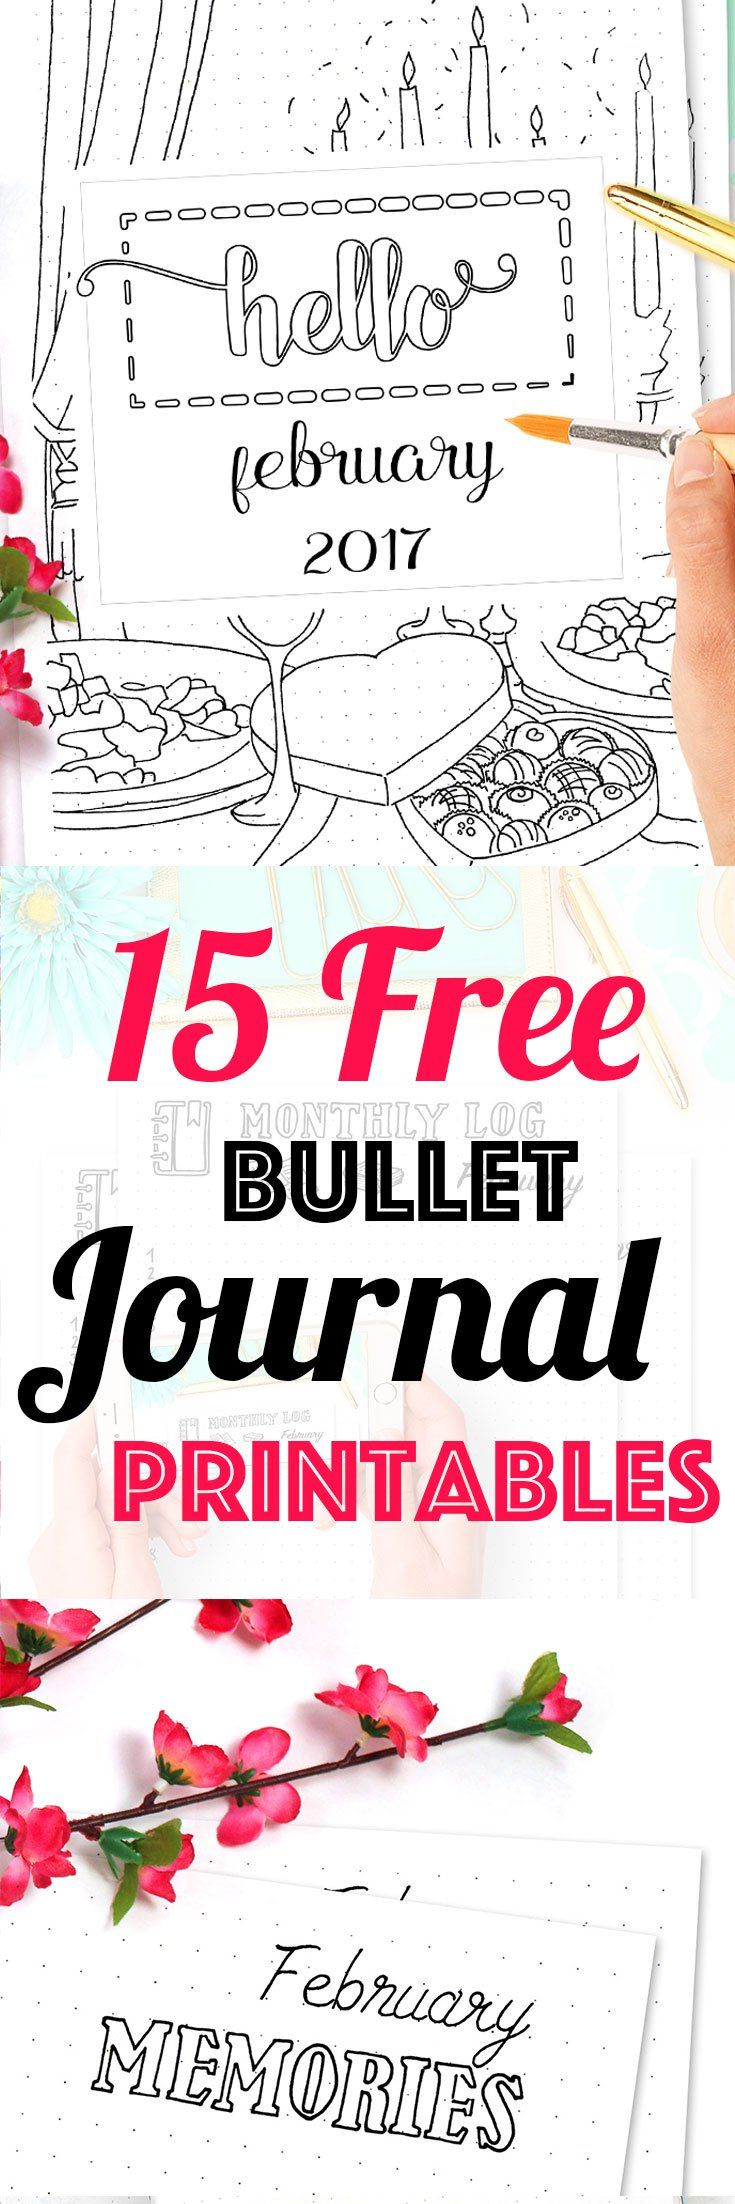 818 best images about diy bullet journals and chronodex on pinterest productivity track and. Black Bedroom Furniture Sets. Home Design Ideas